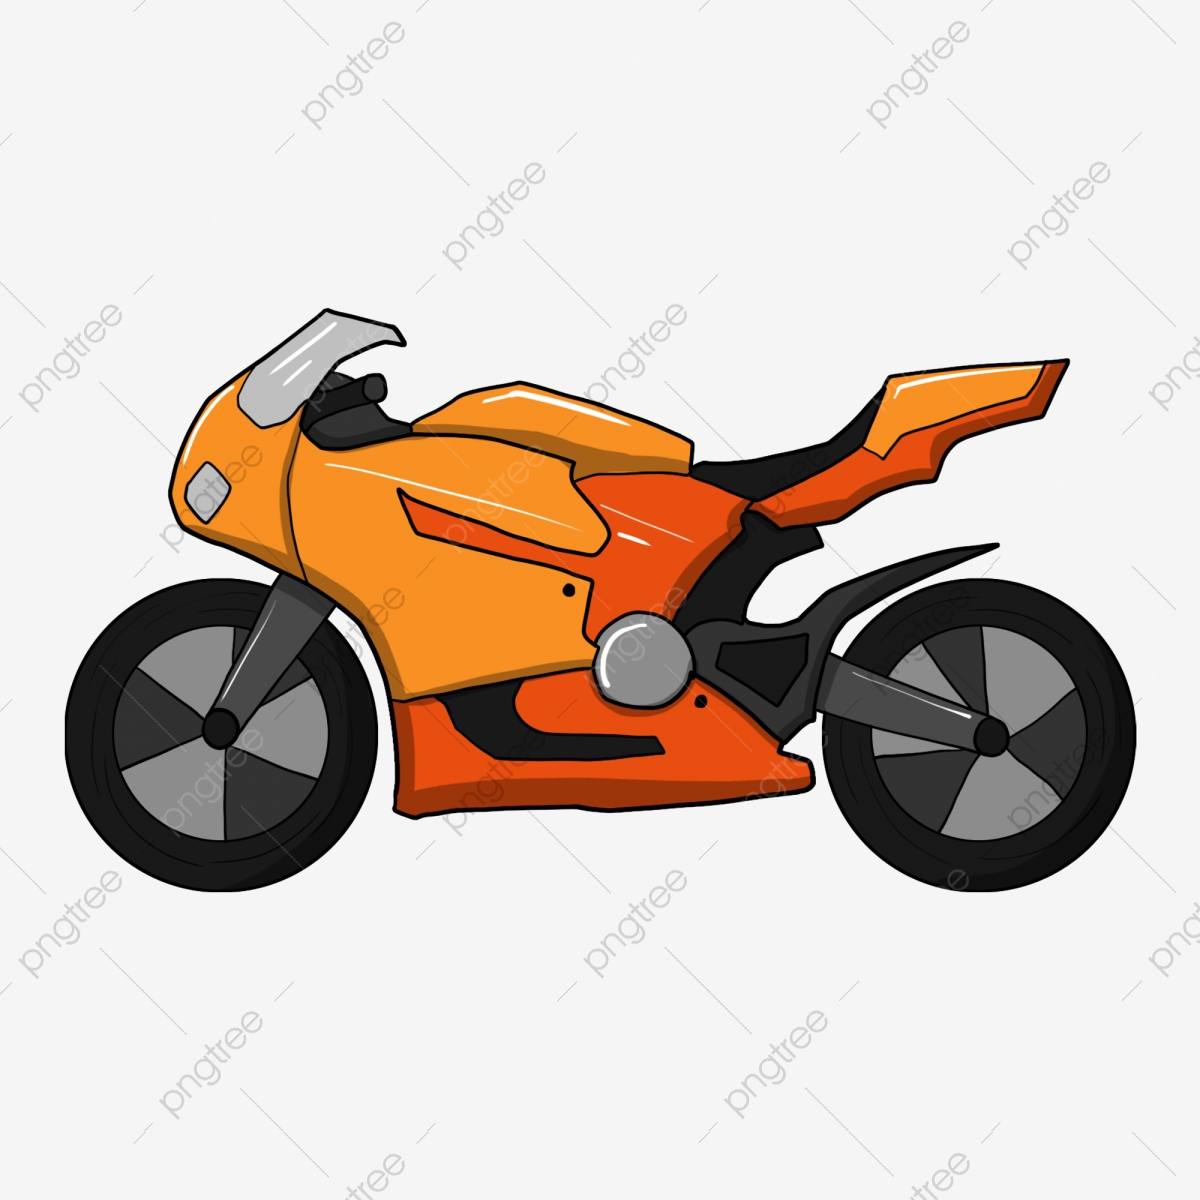 Motorcycle clipart orange. Red locomotive hand painted